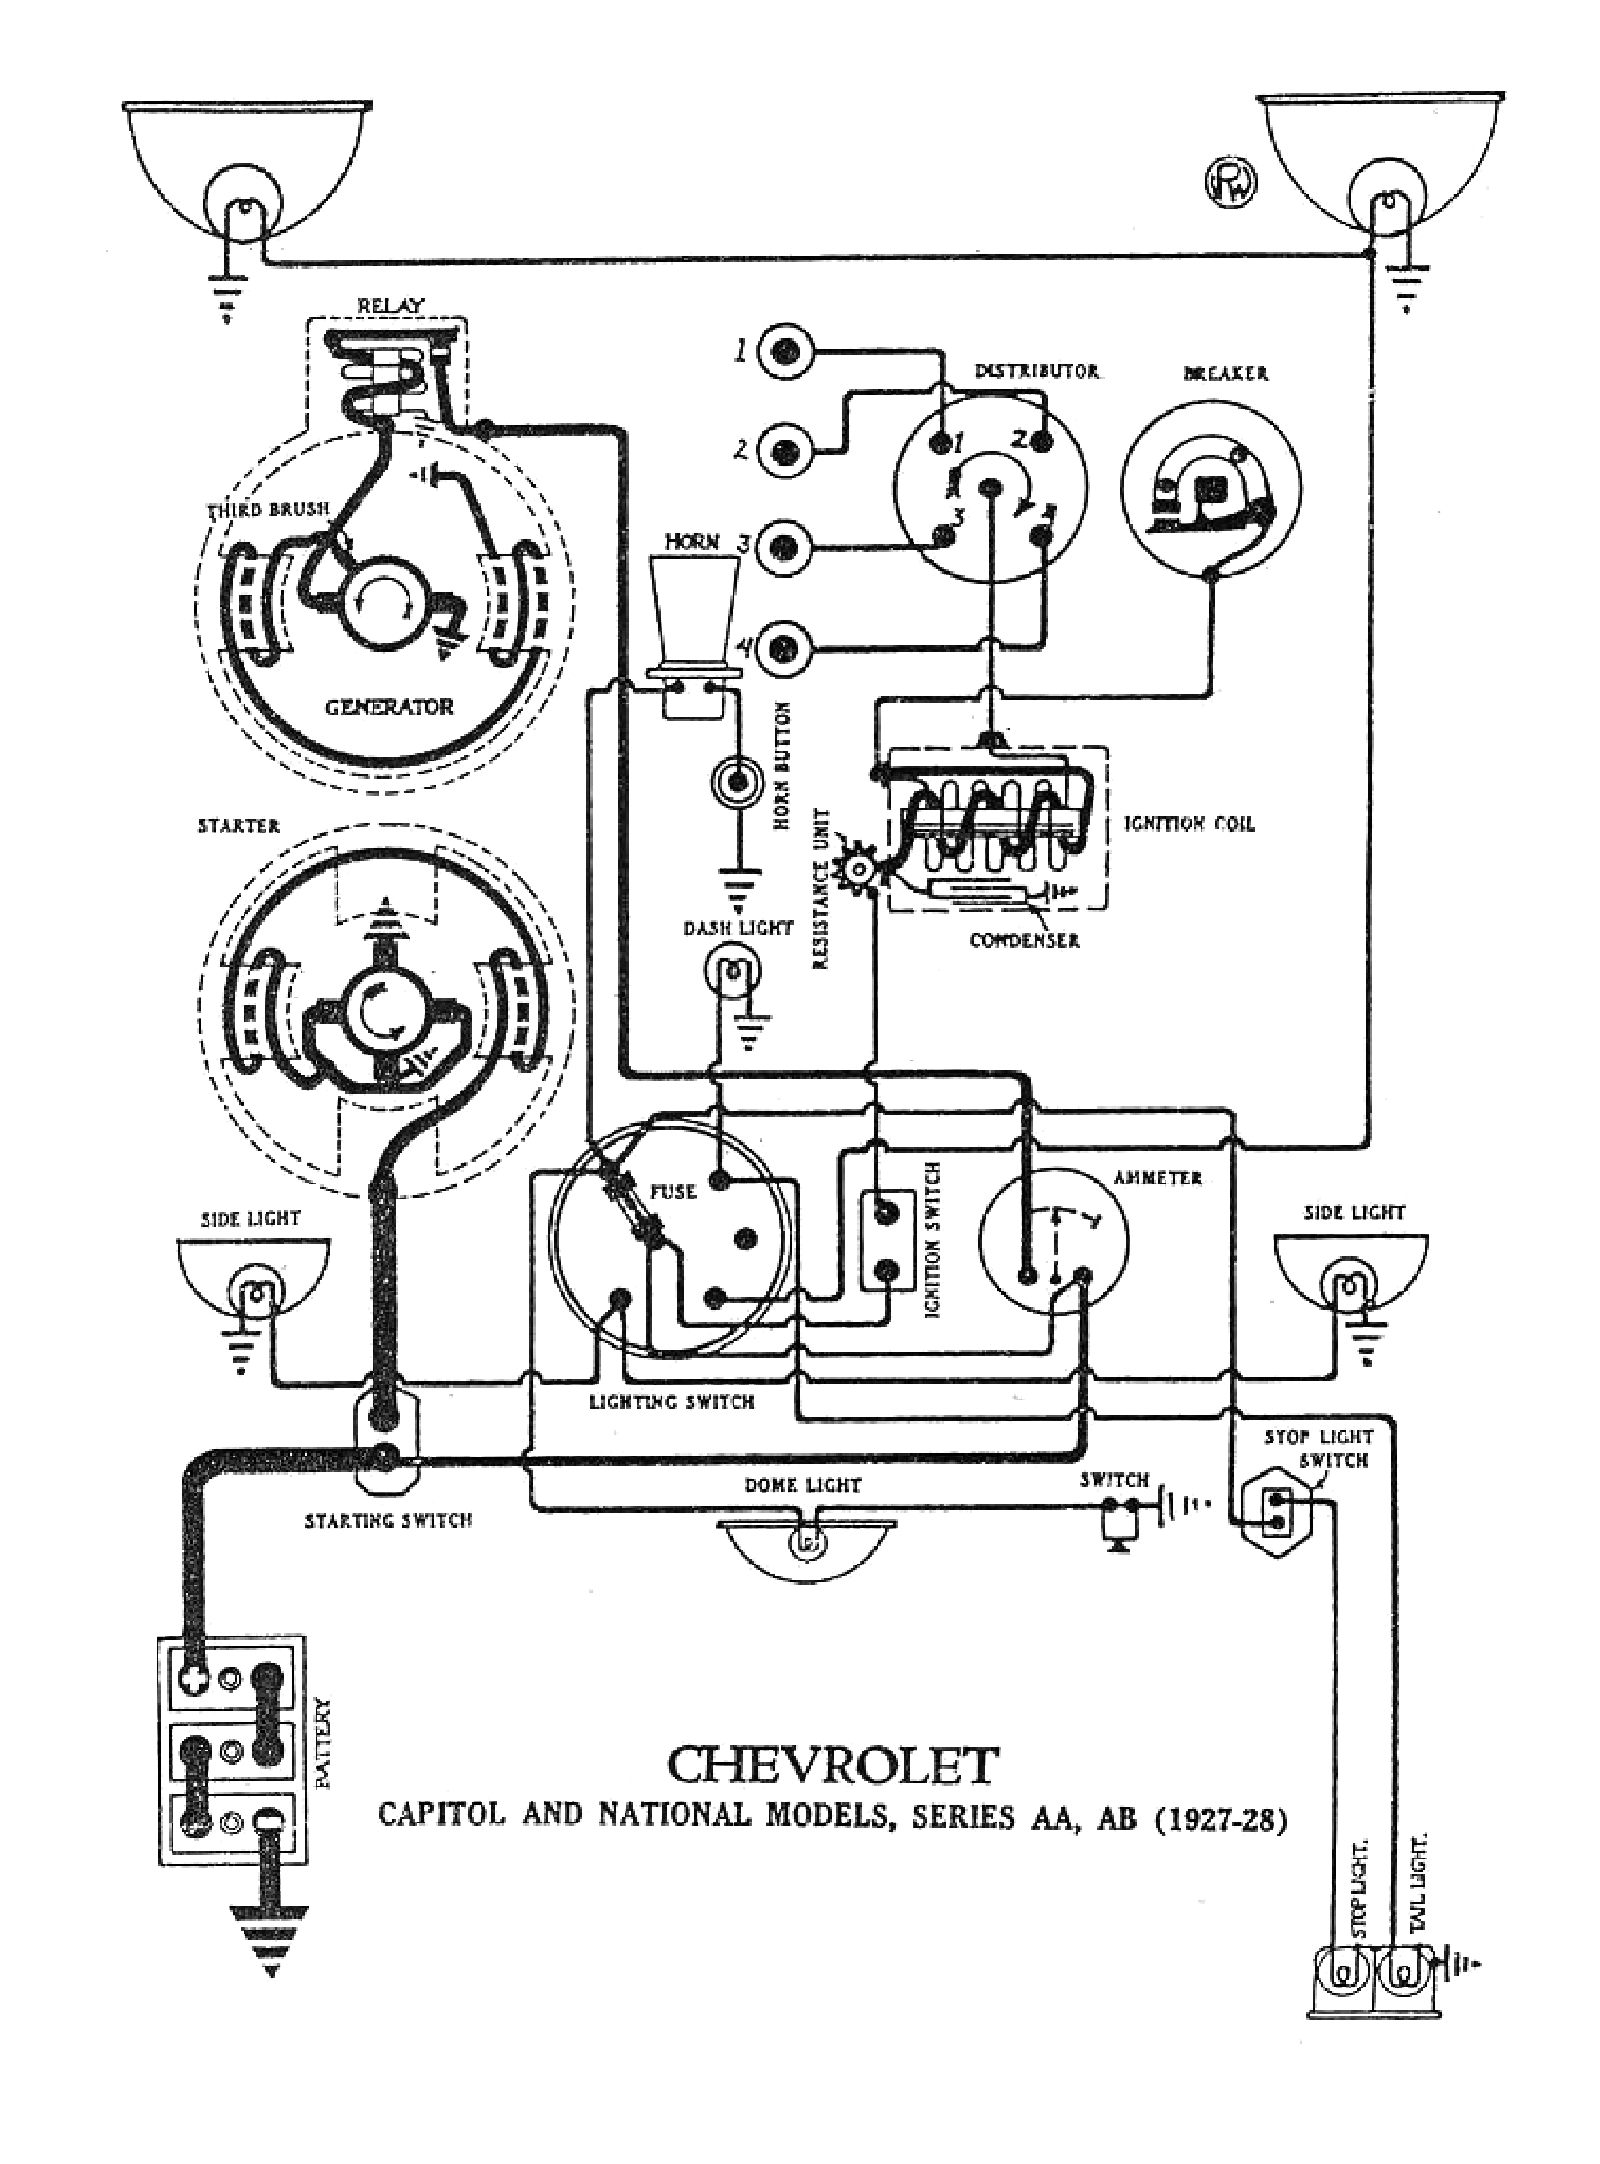 1927 capitol & national models  1928, 1928 wiring diagrams